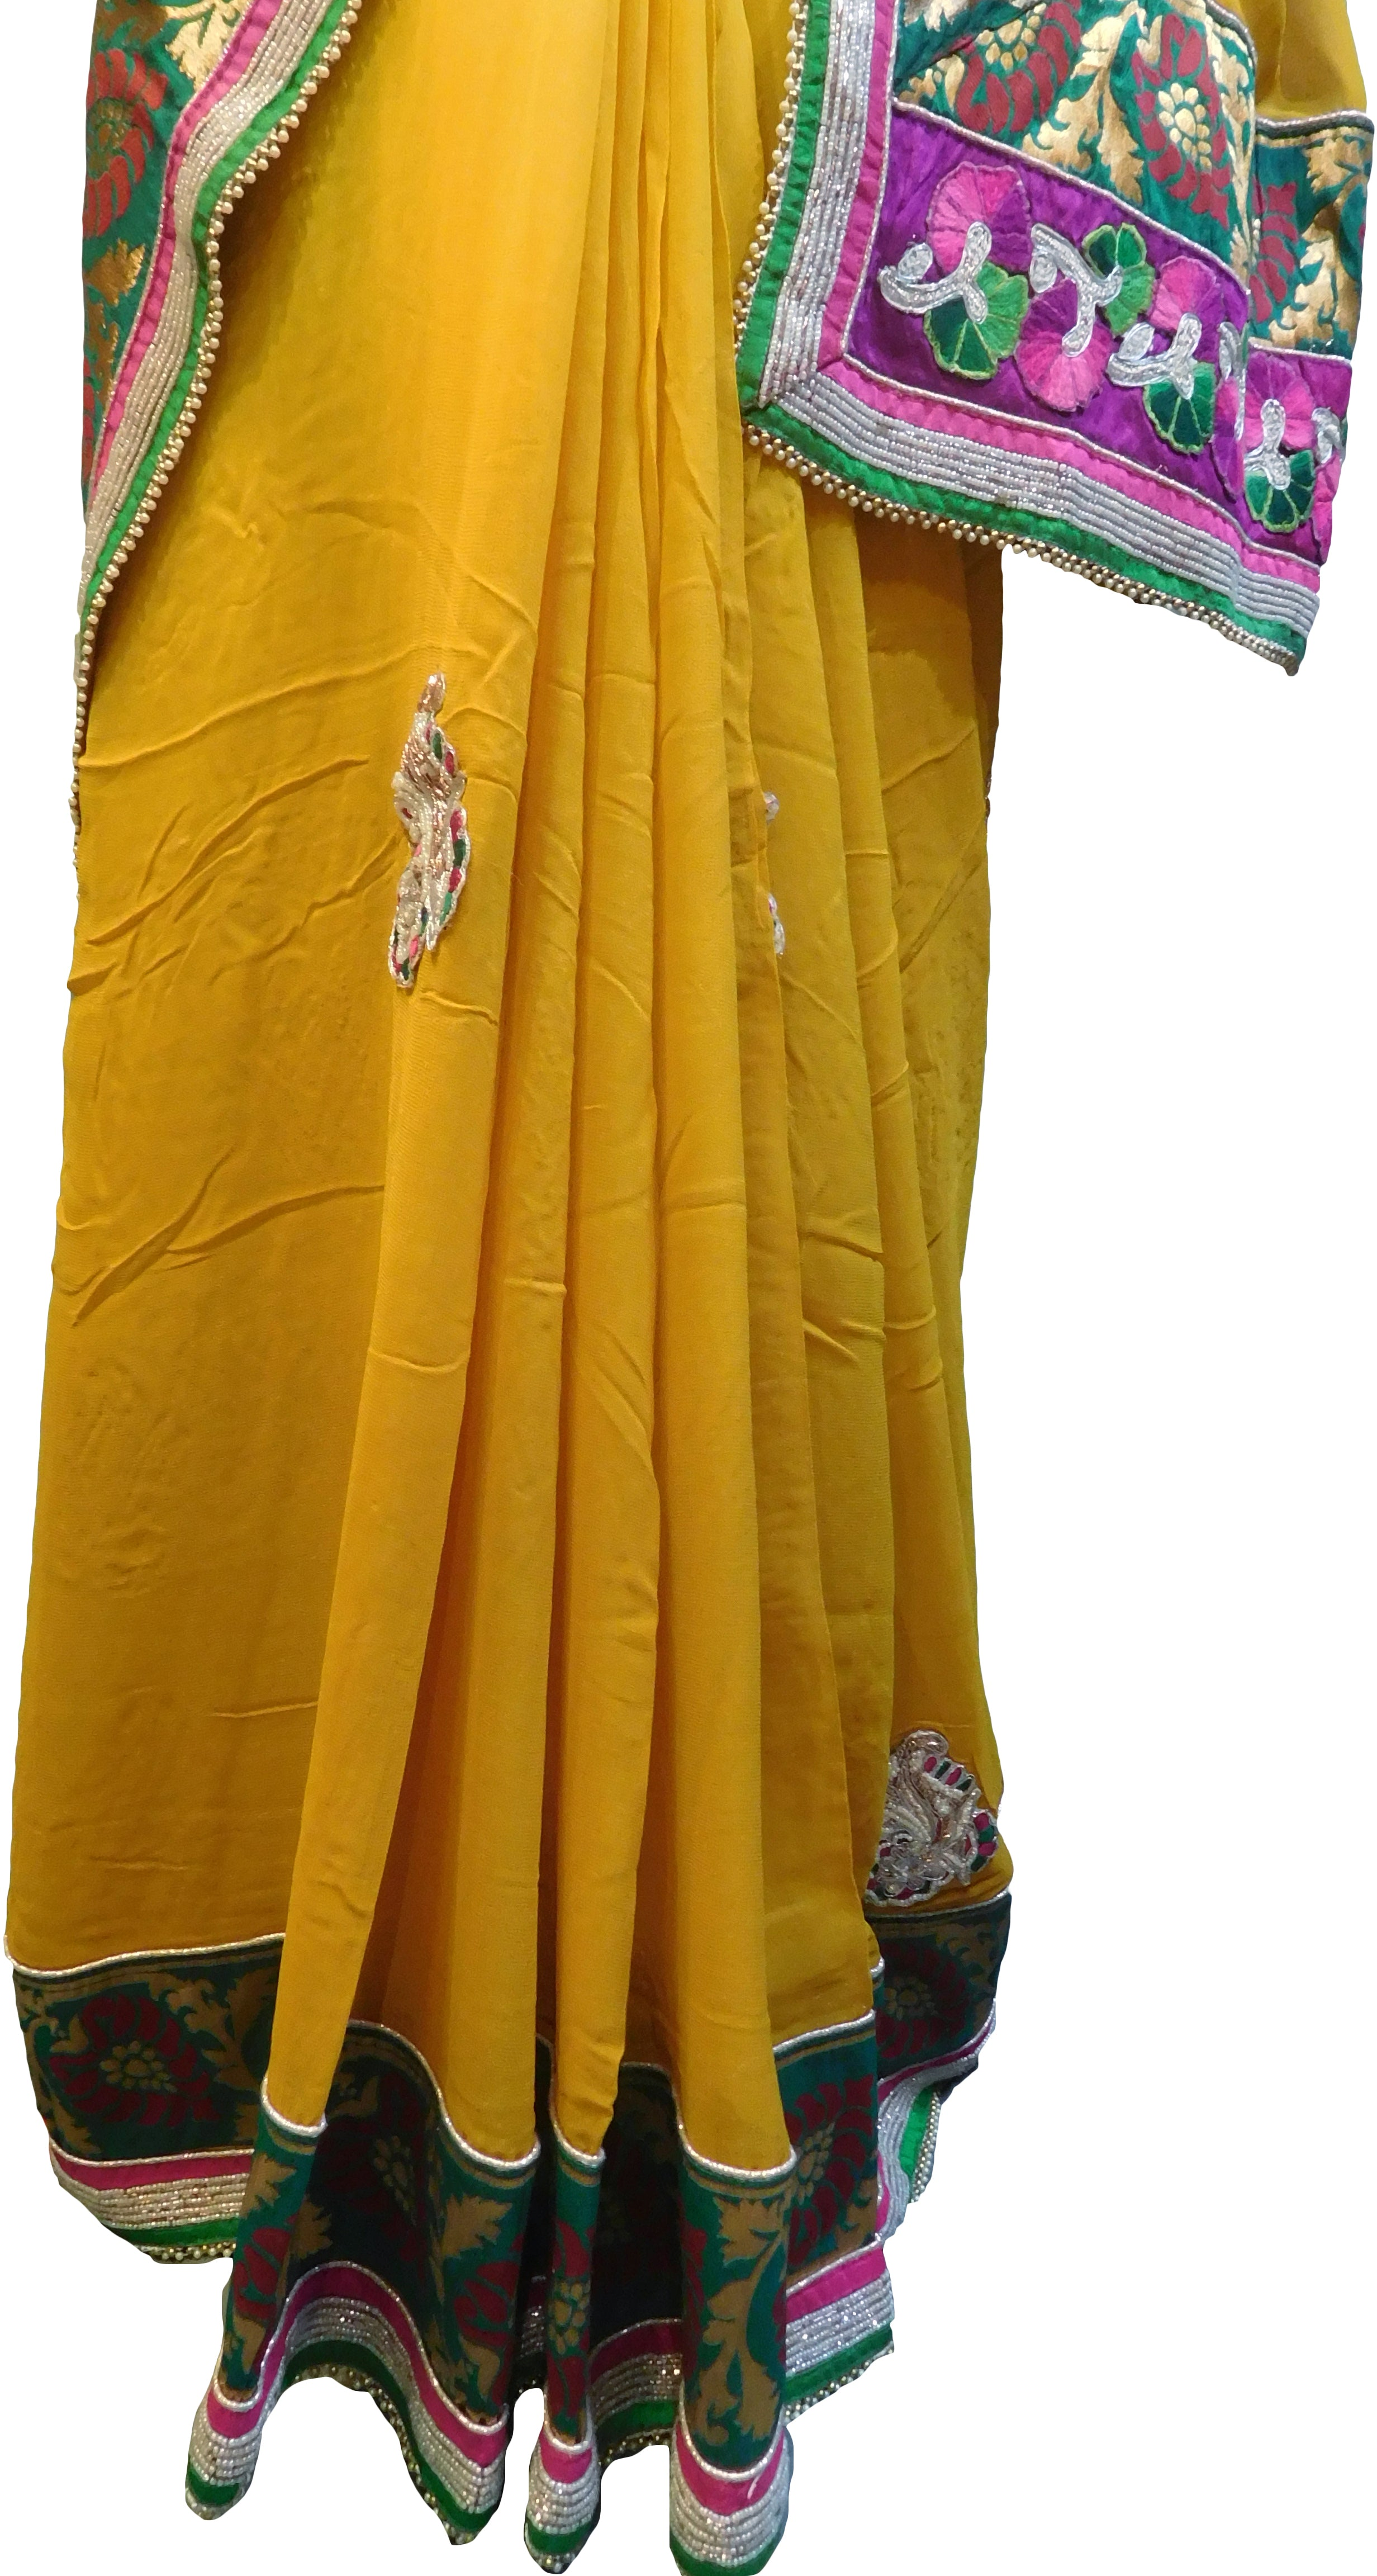 SMSAREE Yellow Designer Wedding Partywear Georgette (Viscos) Thread Zari Beads Pearl Bullion & Stone Hand Embroidery Work Bridal Saree Sari With Blouse Piece E859